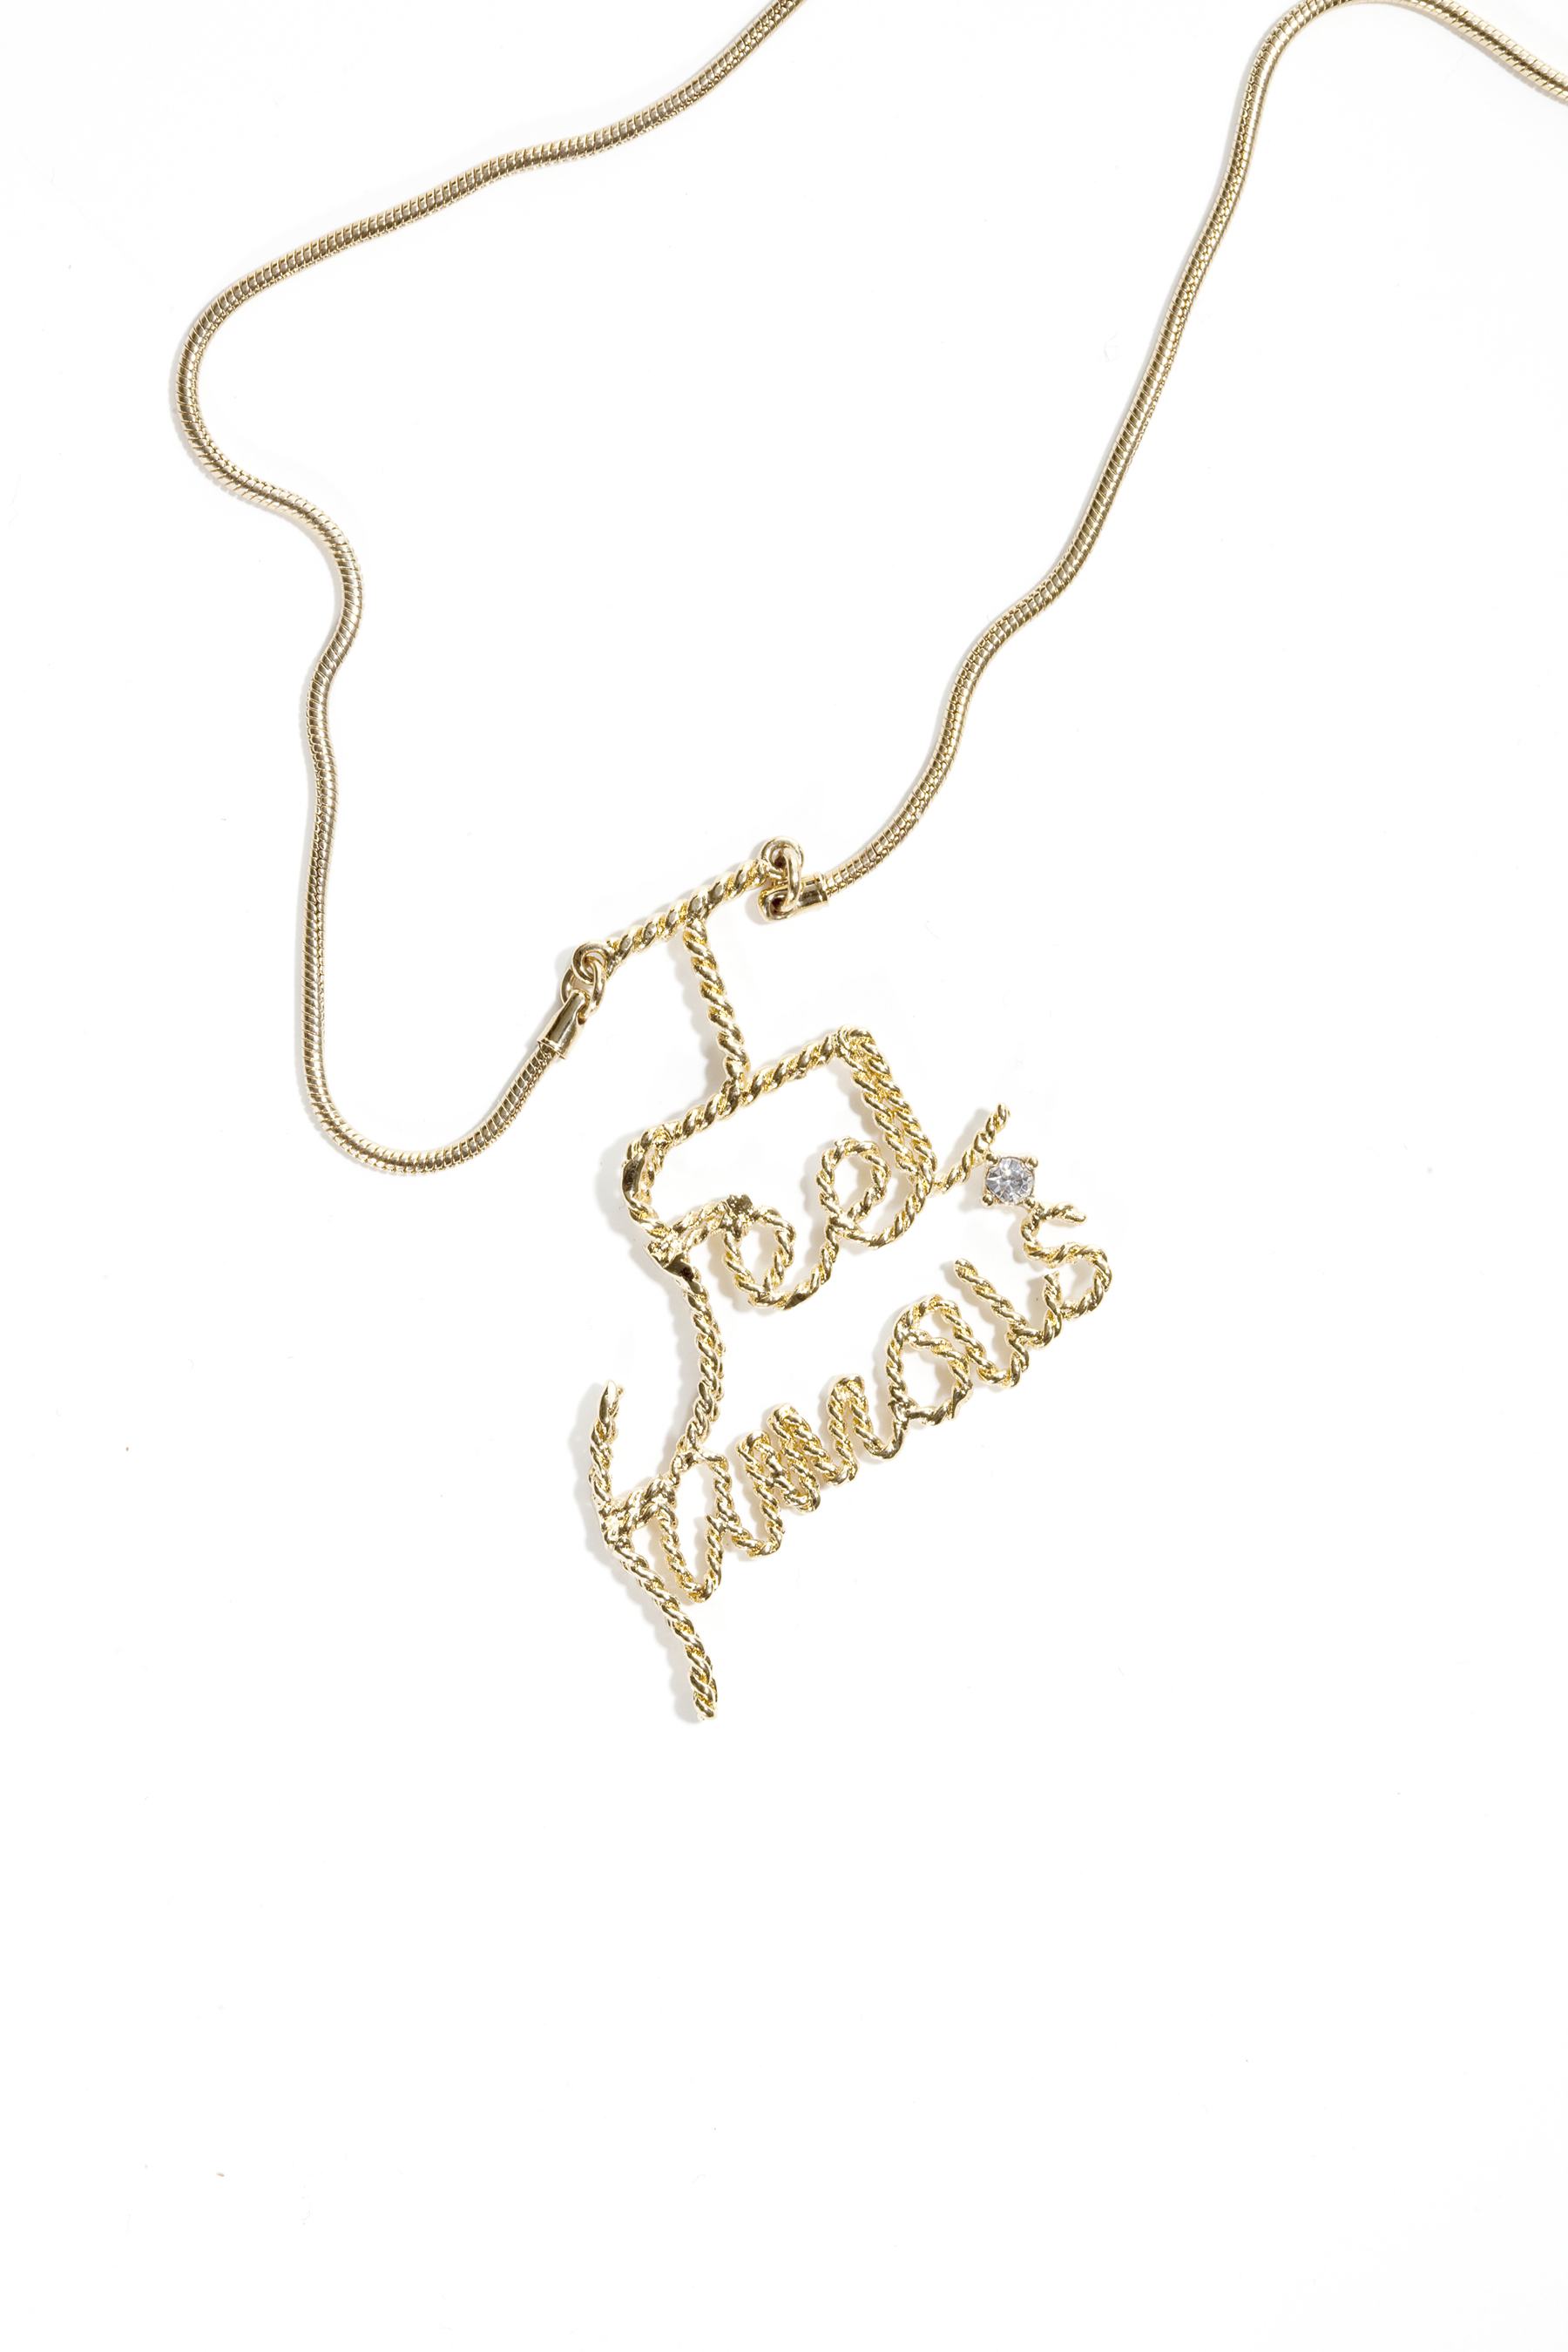 I Feel Famous Necklace